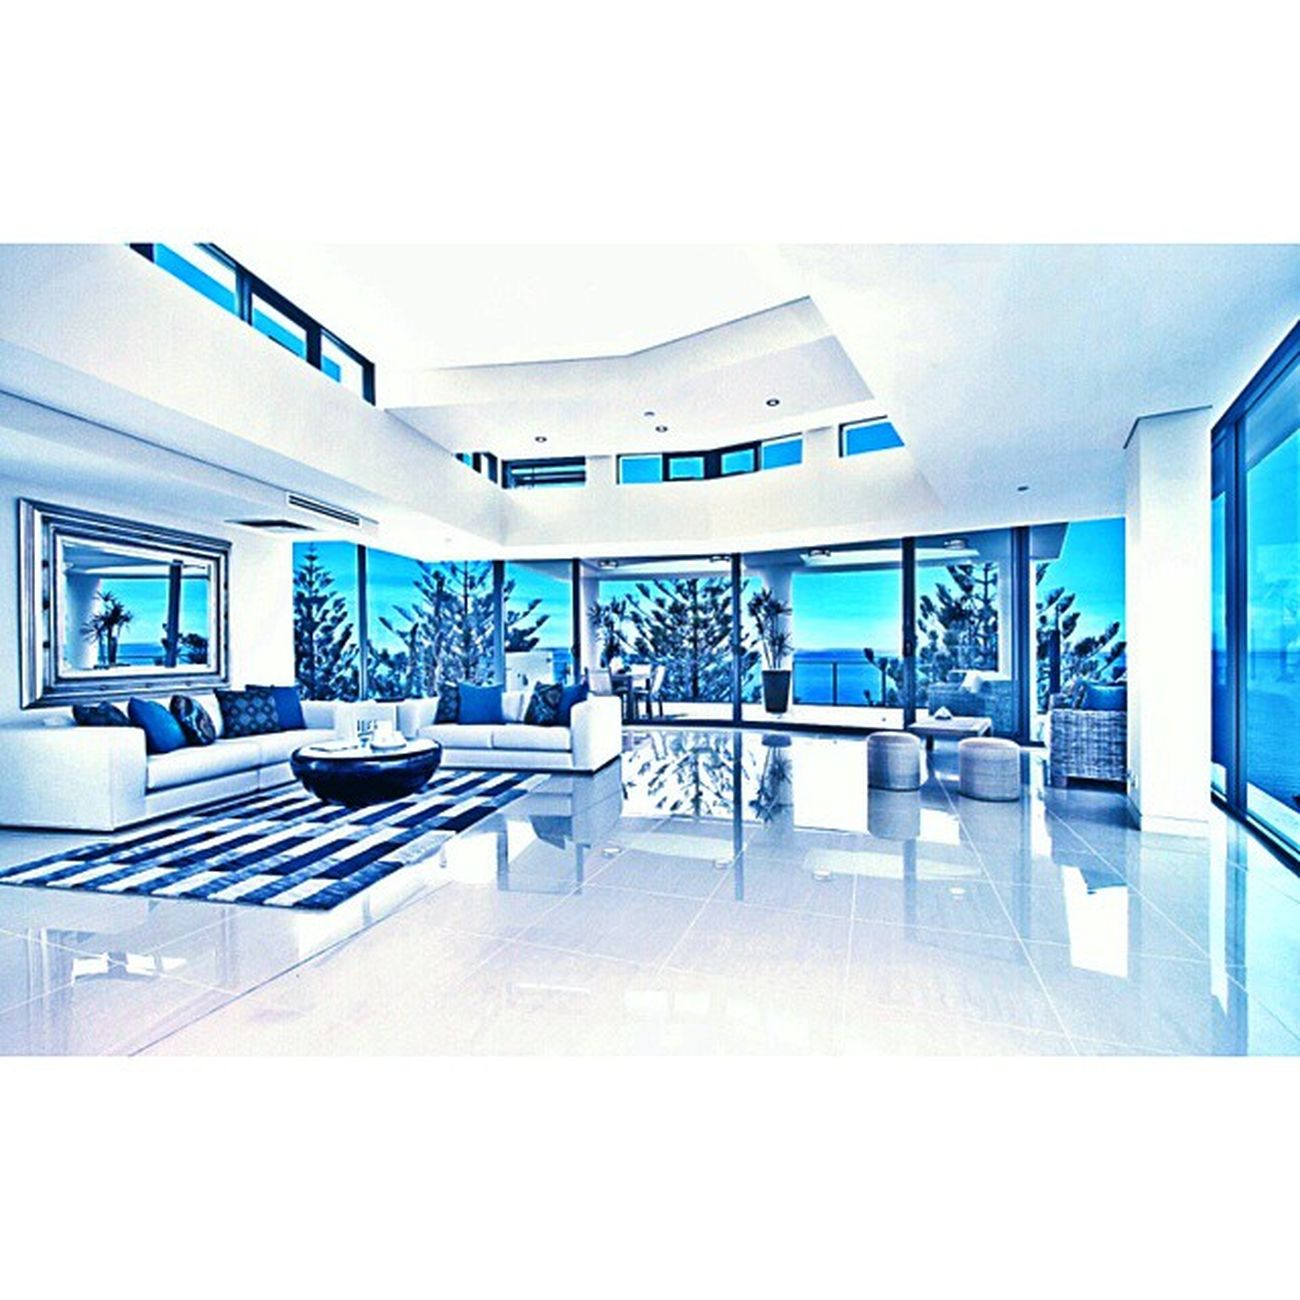 Luxury Realestate Mansion Oceanfront Implus_daily Primeshots Photooftheday Bestoftheday Millionaire Billionaire  Lavishliving Miami Losangeles Newyork Lasvegas Atlanta Condo Interiordesign Style Fashion